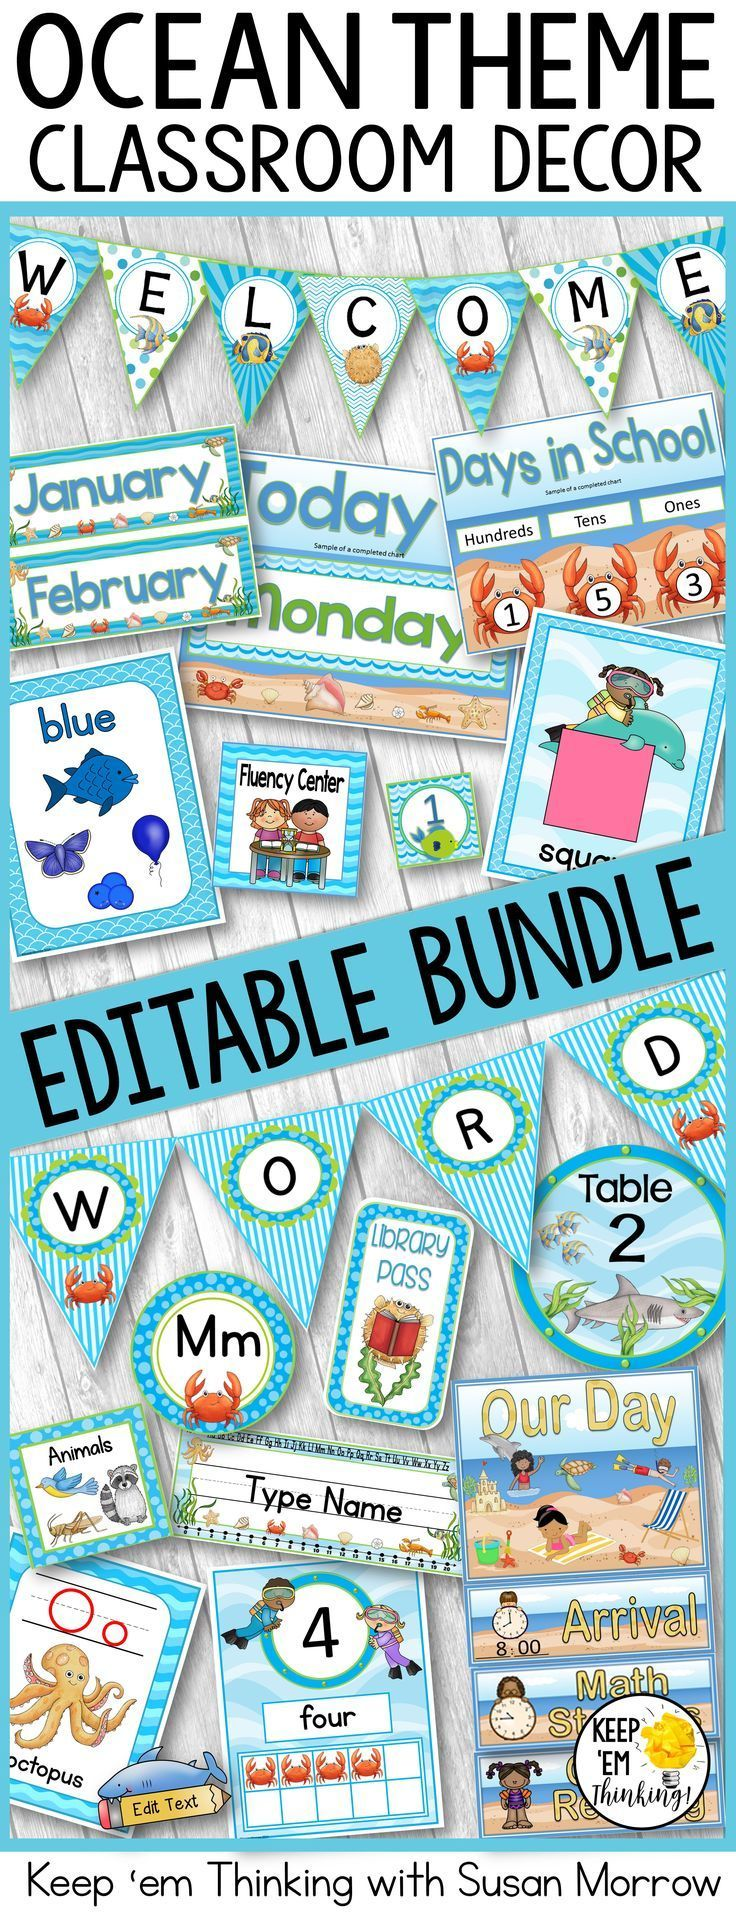 Ocean Theme Classroom Decor Bundle- Editable! Word Wall, Banners, Charts & More #classroomdecor